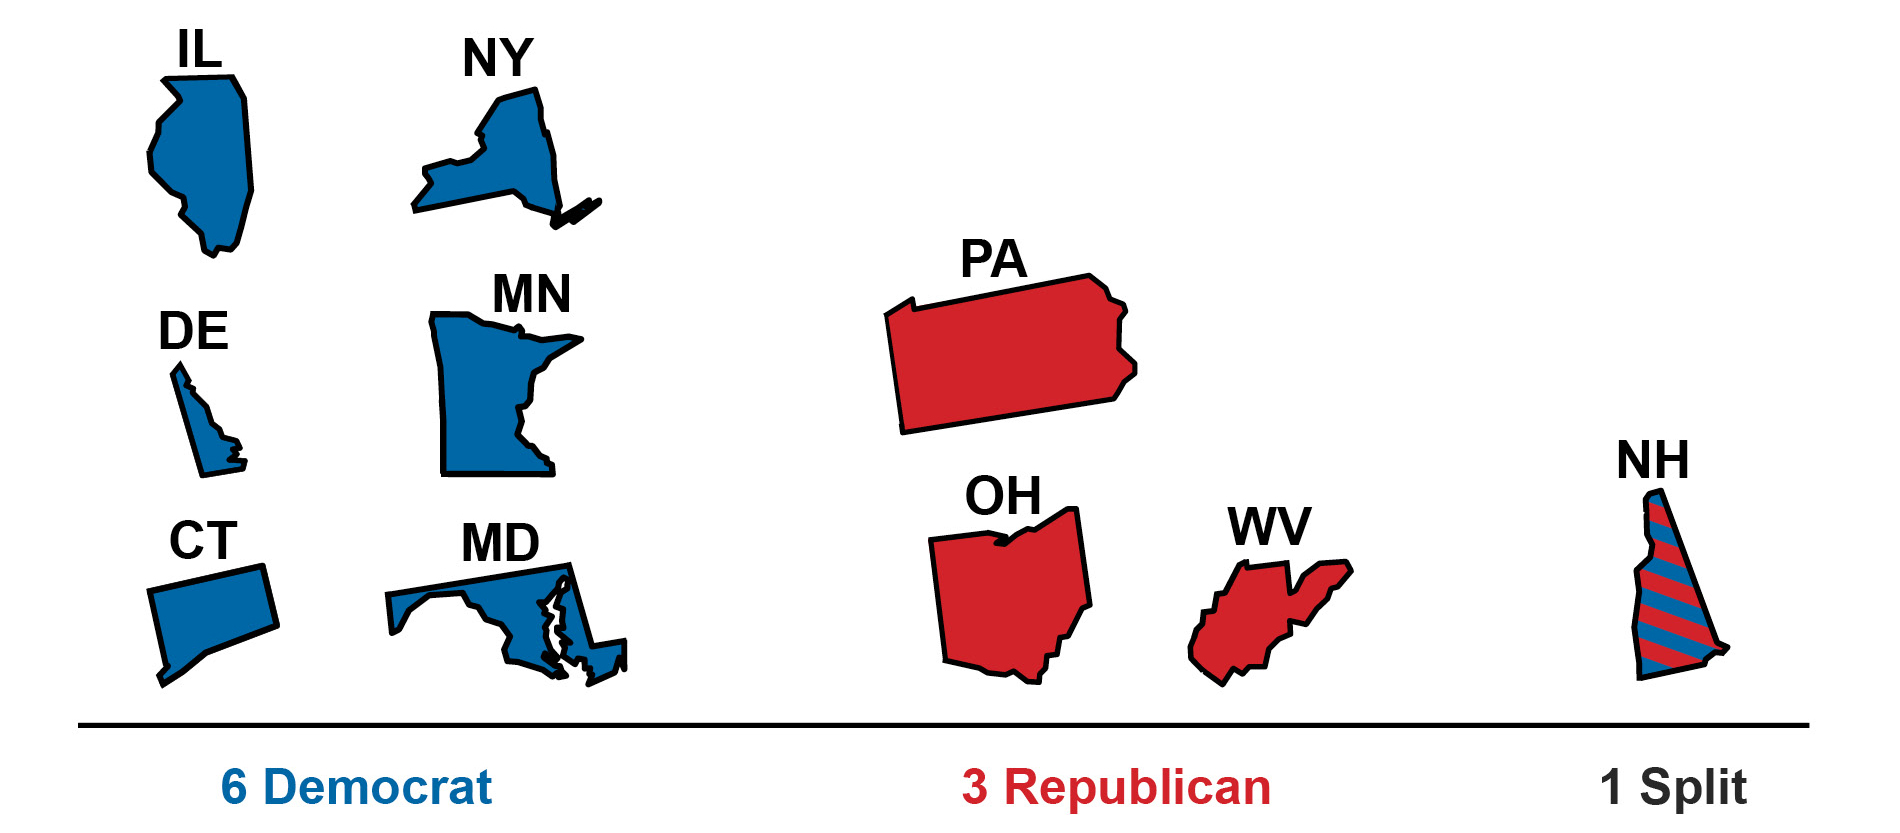 Partisan Control of Majority Maker Districts